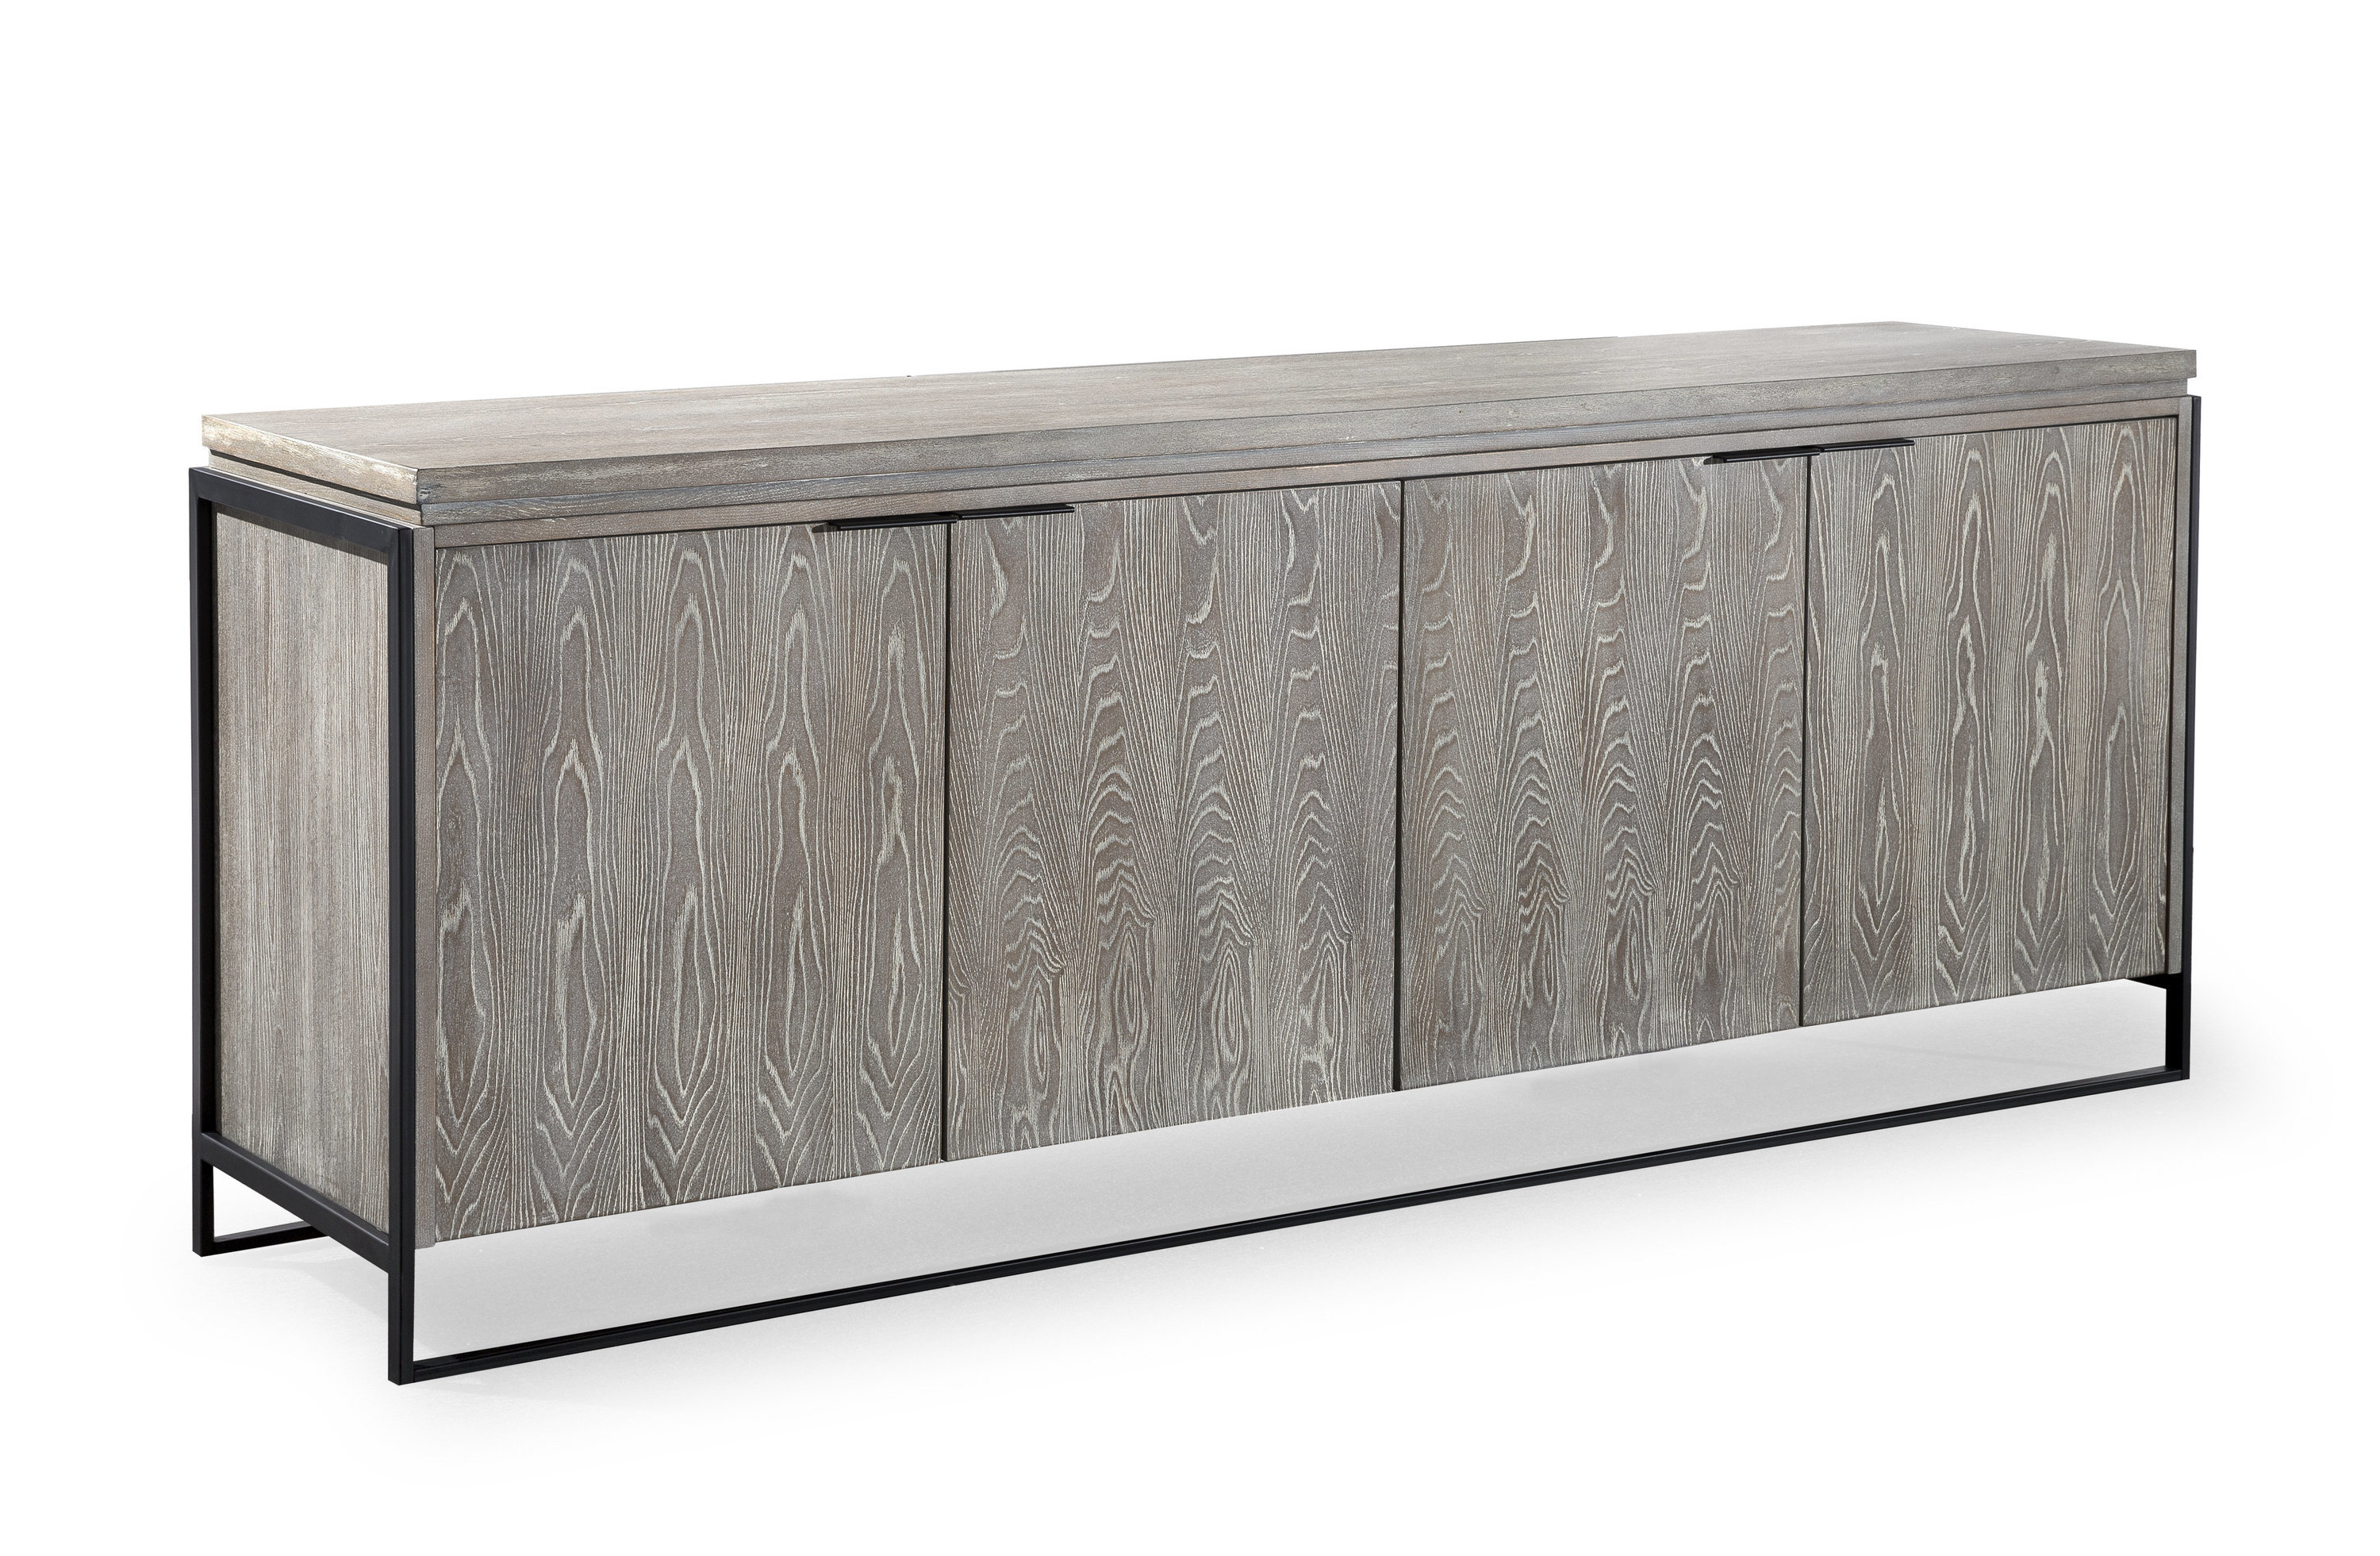 Stella Sideboards Intended For Current Zybert Sideboard (View 14 of 20)